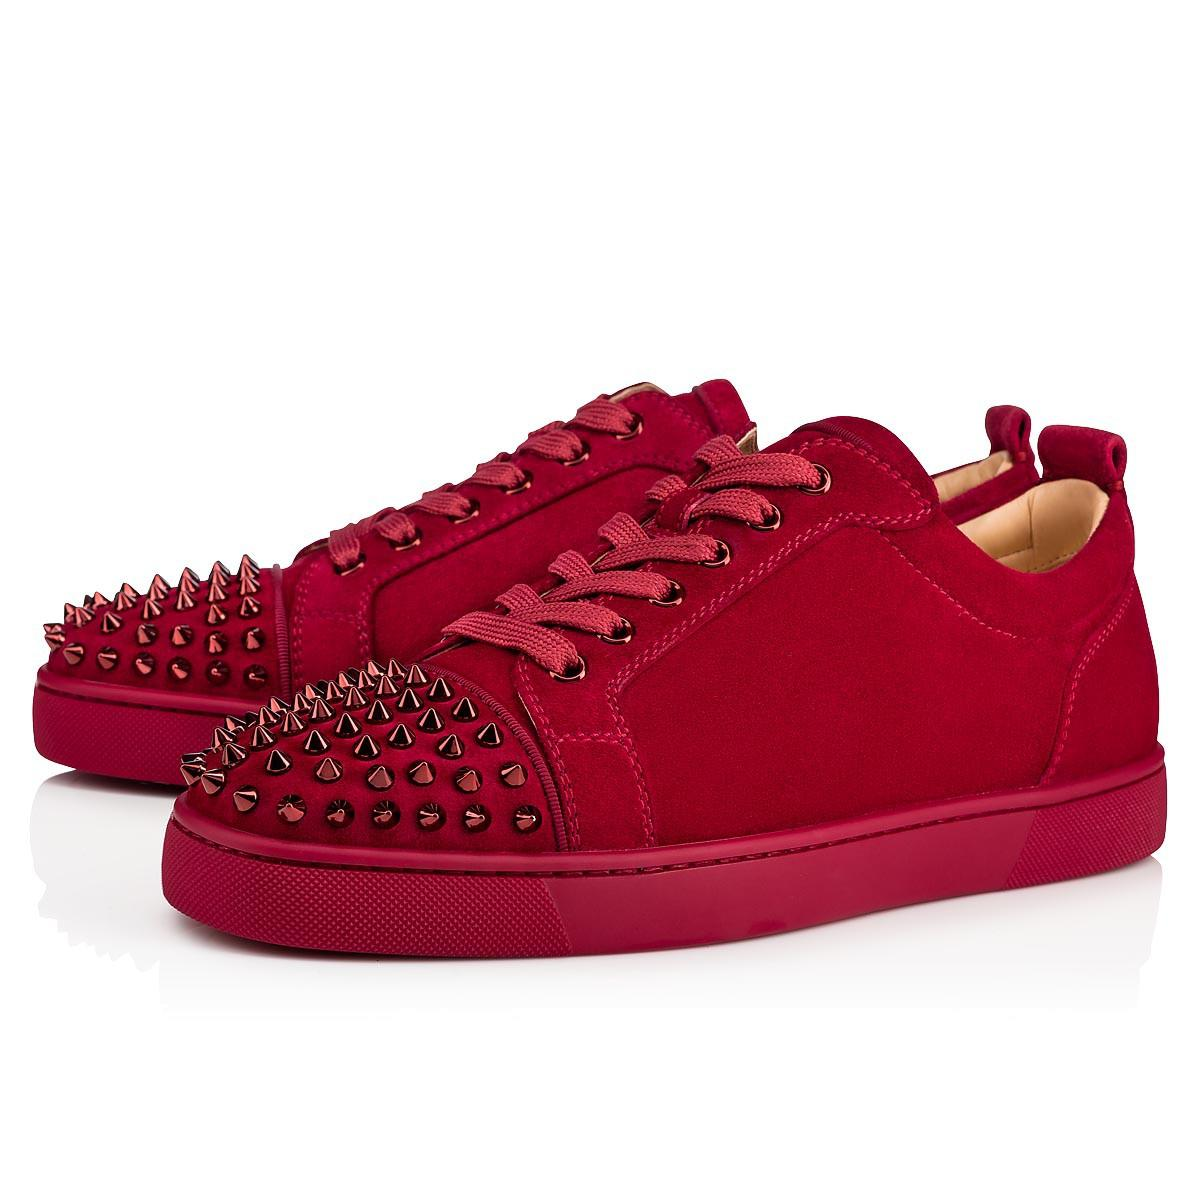 6156330cb1e Christian Louboutin Louis Junior Spikes Veau Velours/Gros Grain In ...